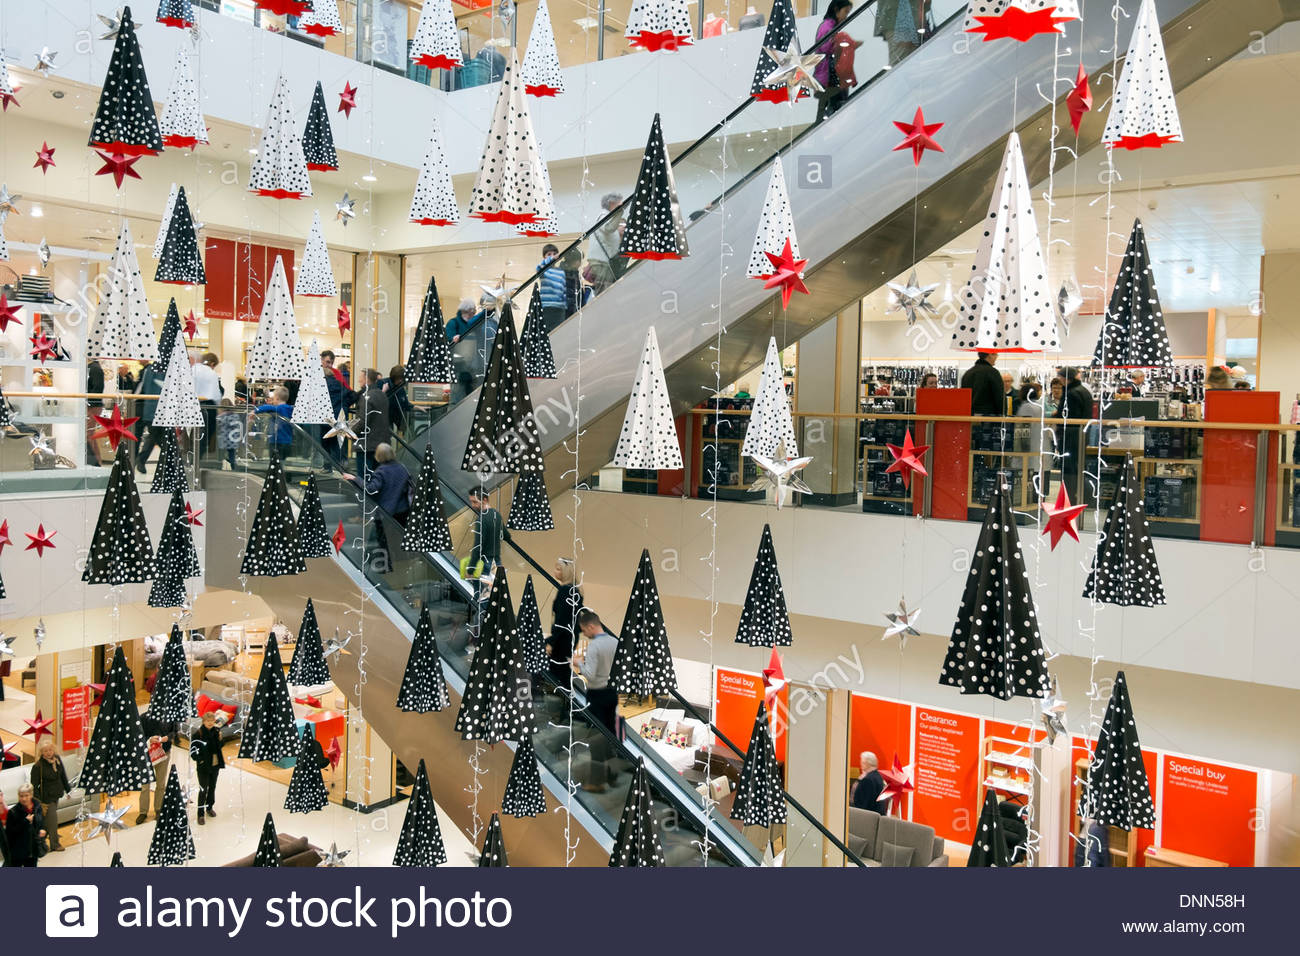 John Lewis Christmas Tree Themes.Christmas Decorations In A John Lewis Store Bristol Uk